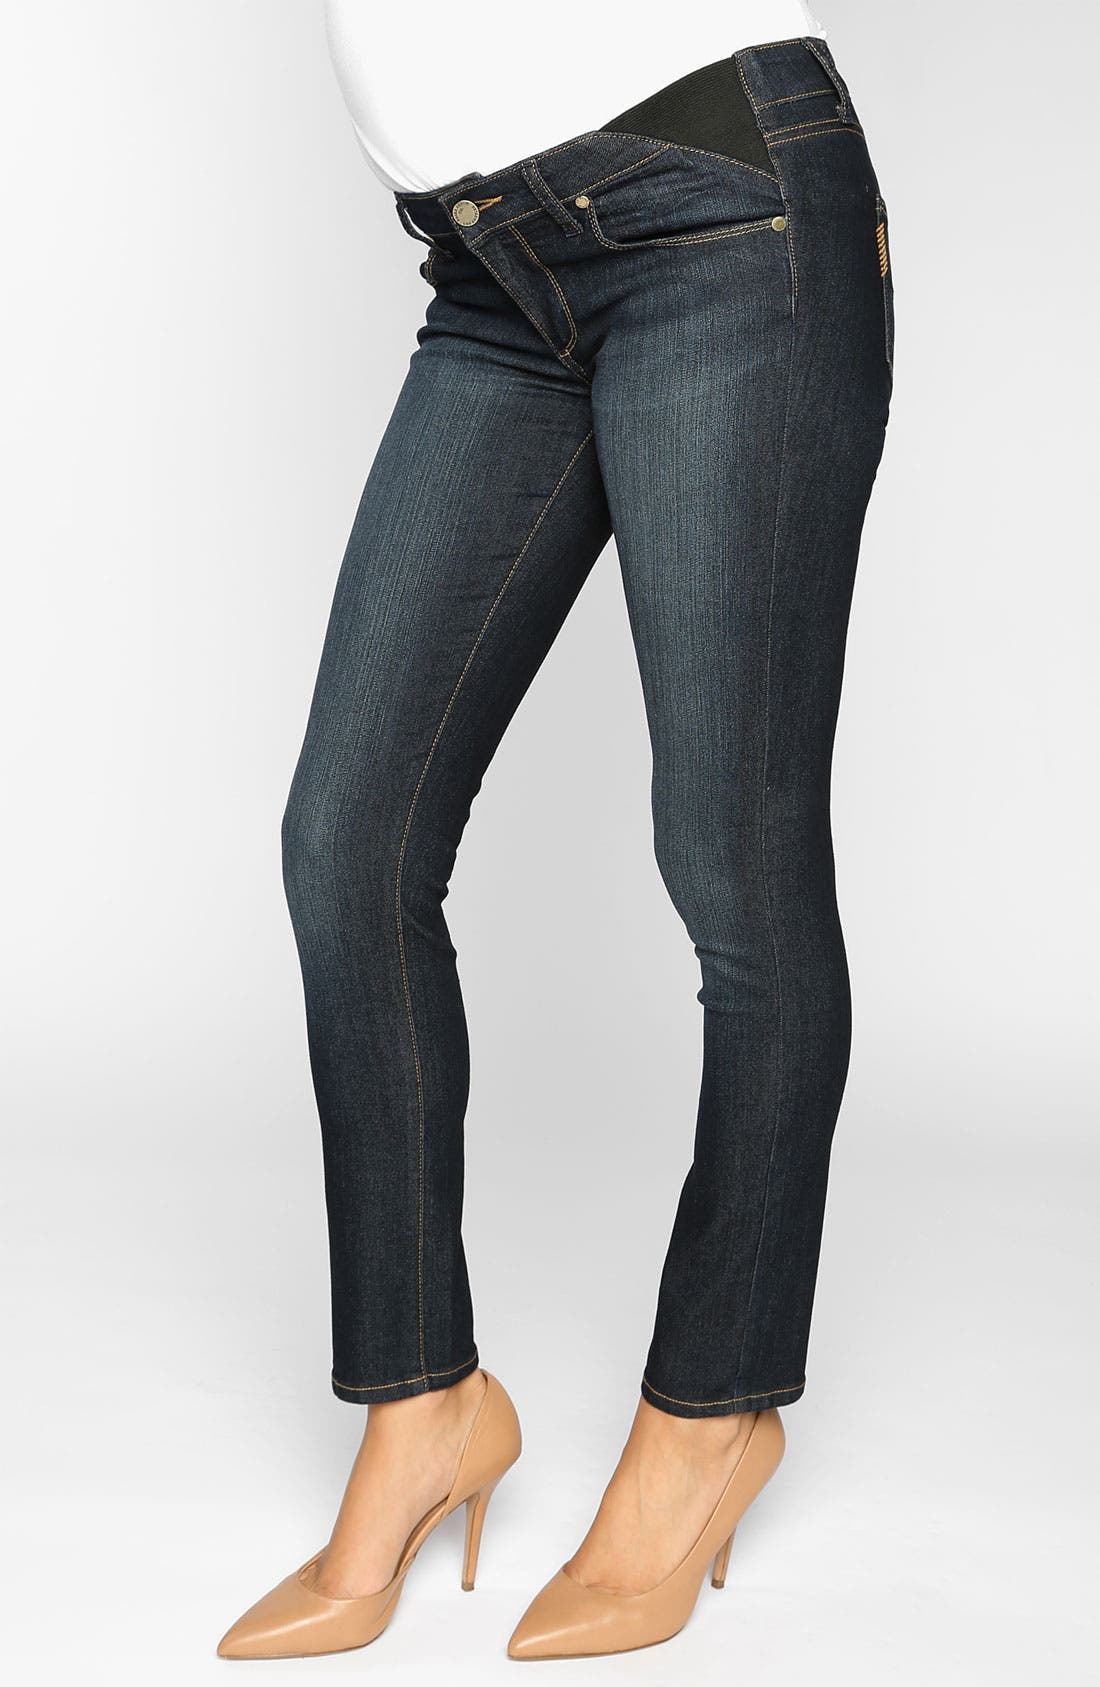 Alternate Image 1 Selected - Paige Maternity 'Union Skyline' Ankle Skinny Jeans (Carson)